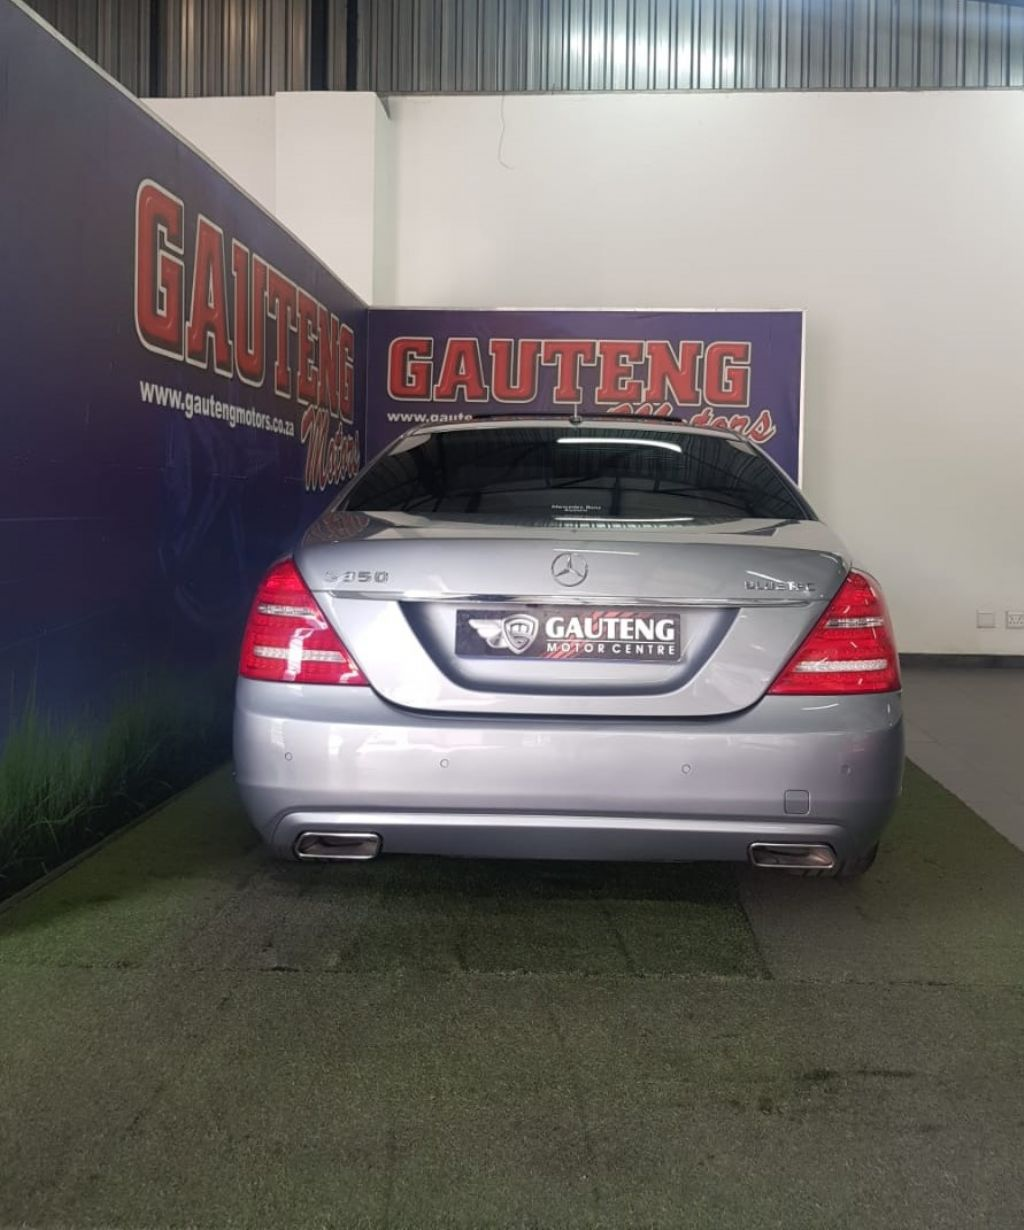 used-mercedes-benz-s-class-3265985-5.jpg